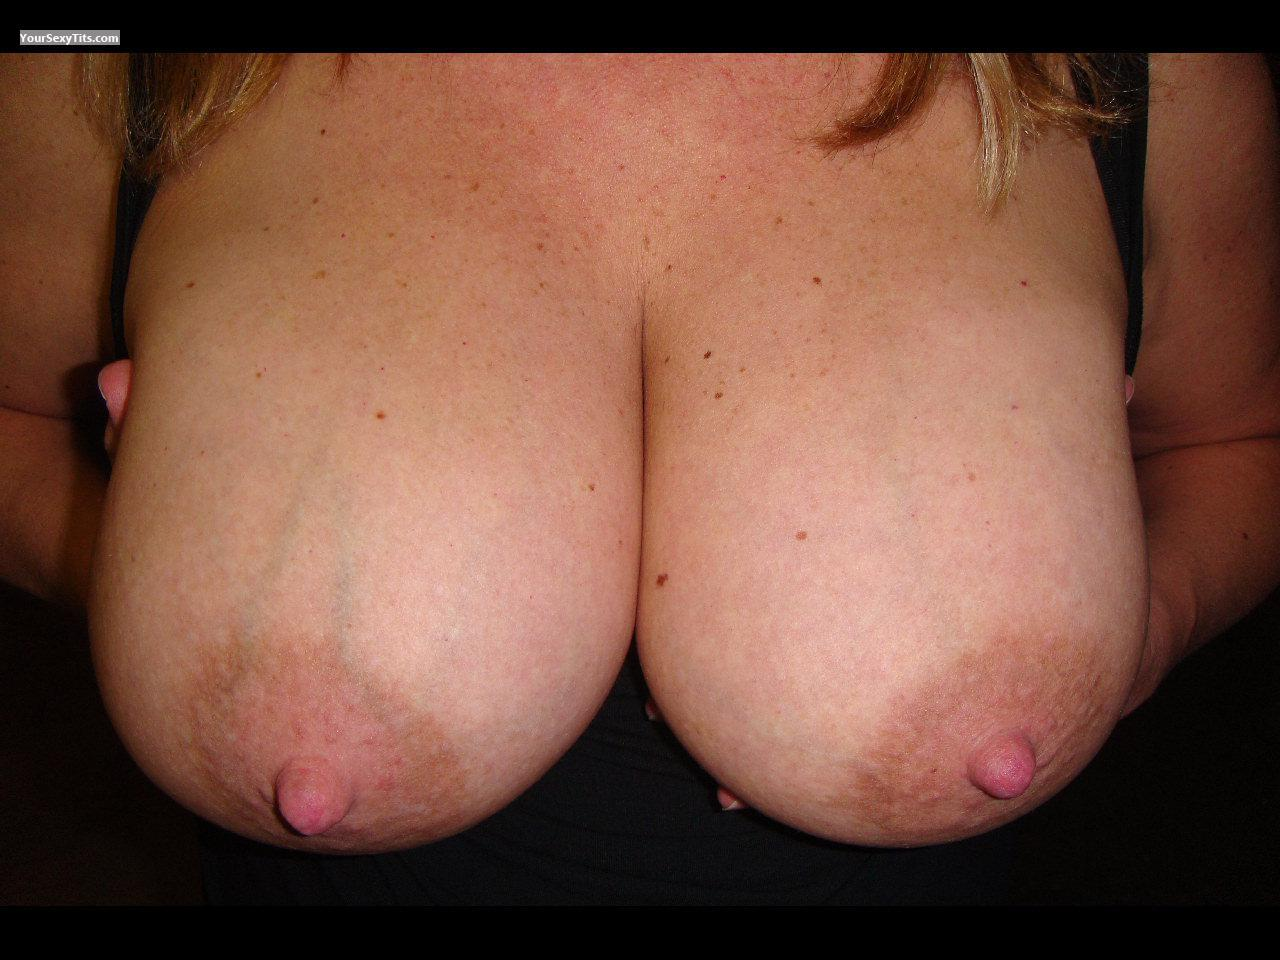 Tit Flash: Very Big Tits - 41 Y/o Milf from United States